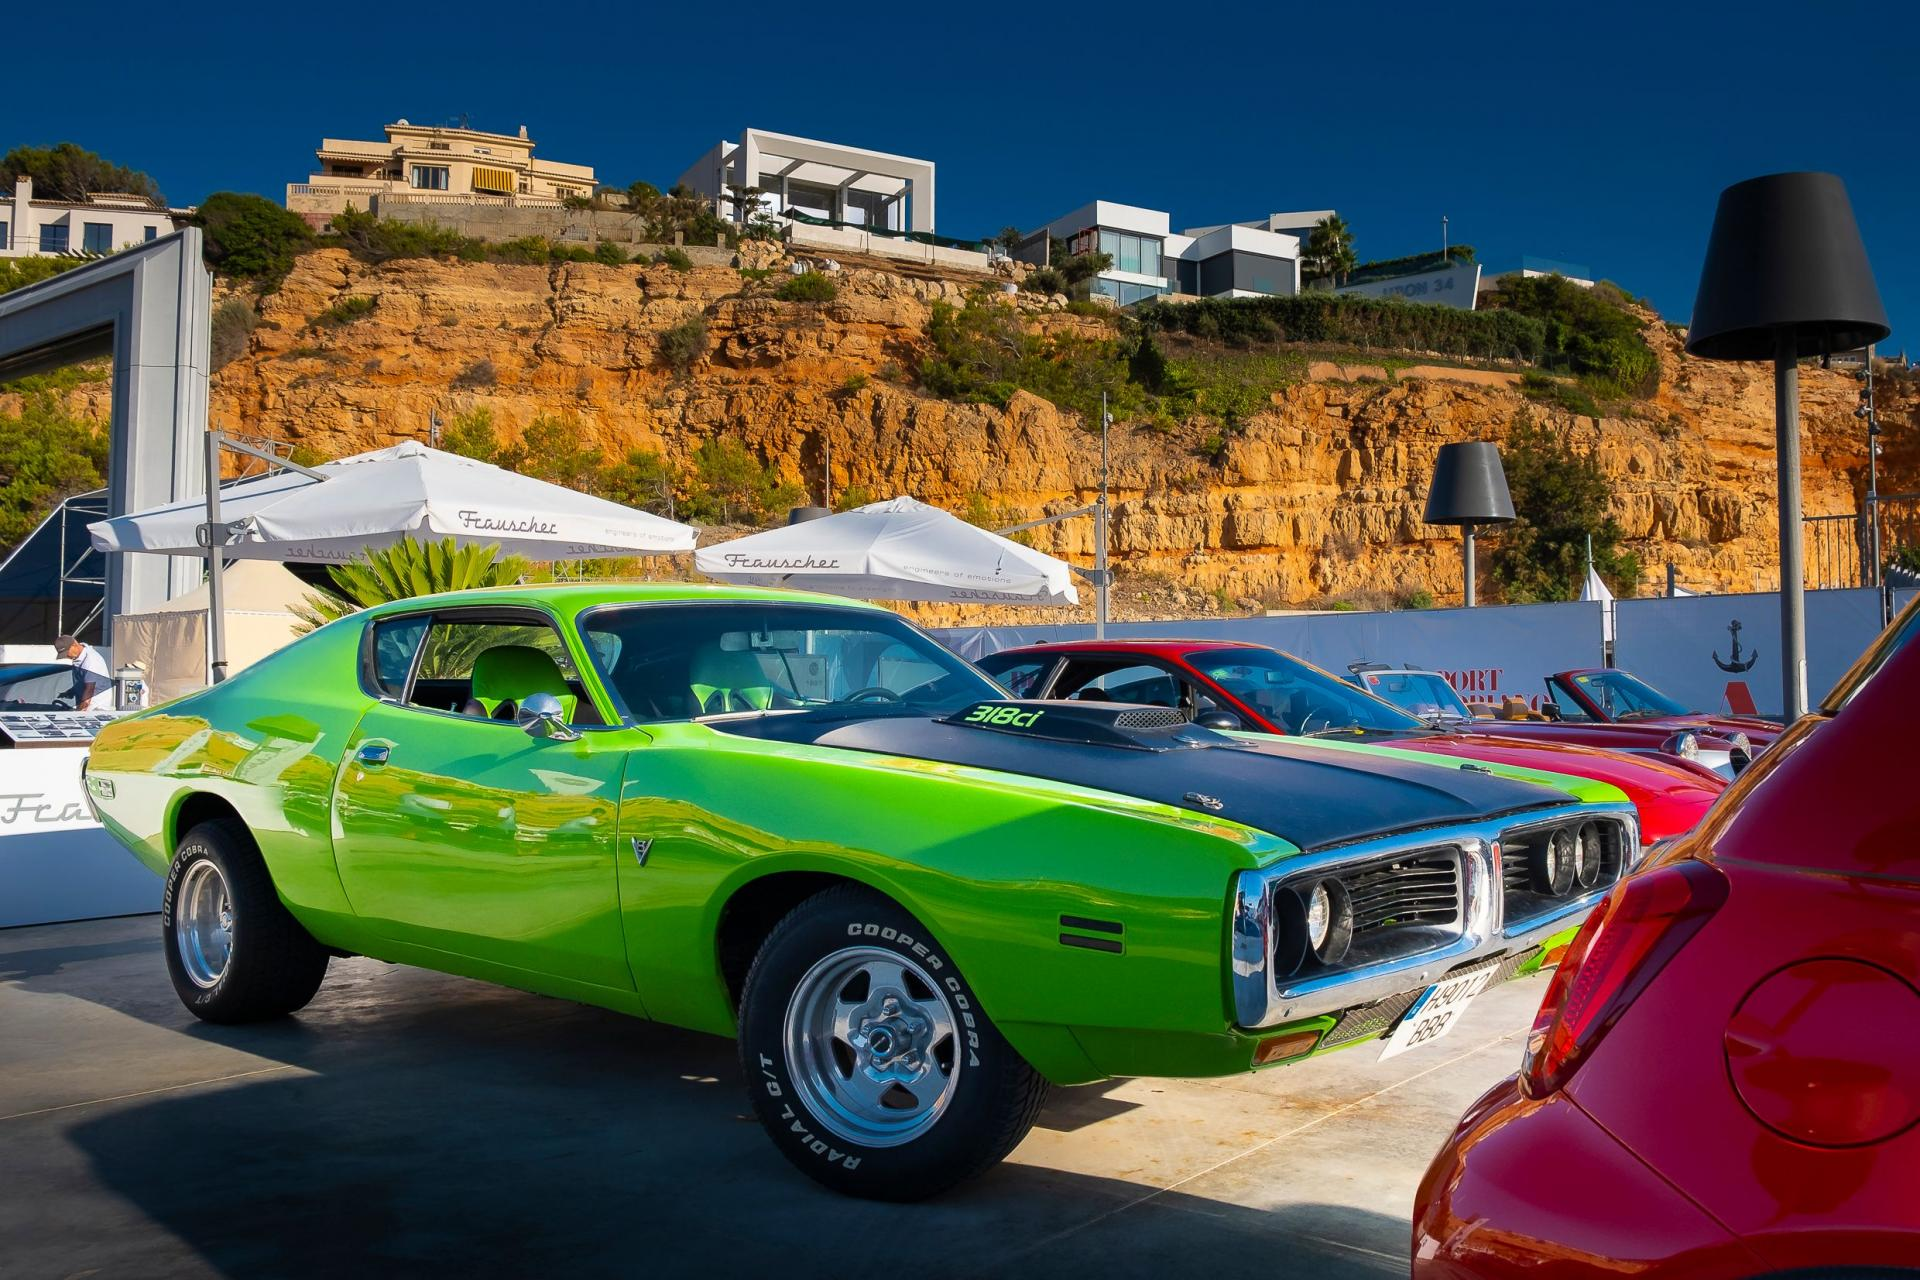 Dodge Charger, I think this colour is 'Green Go' from 1971-1974